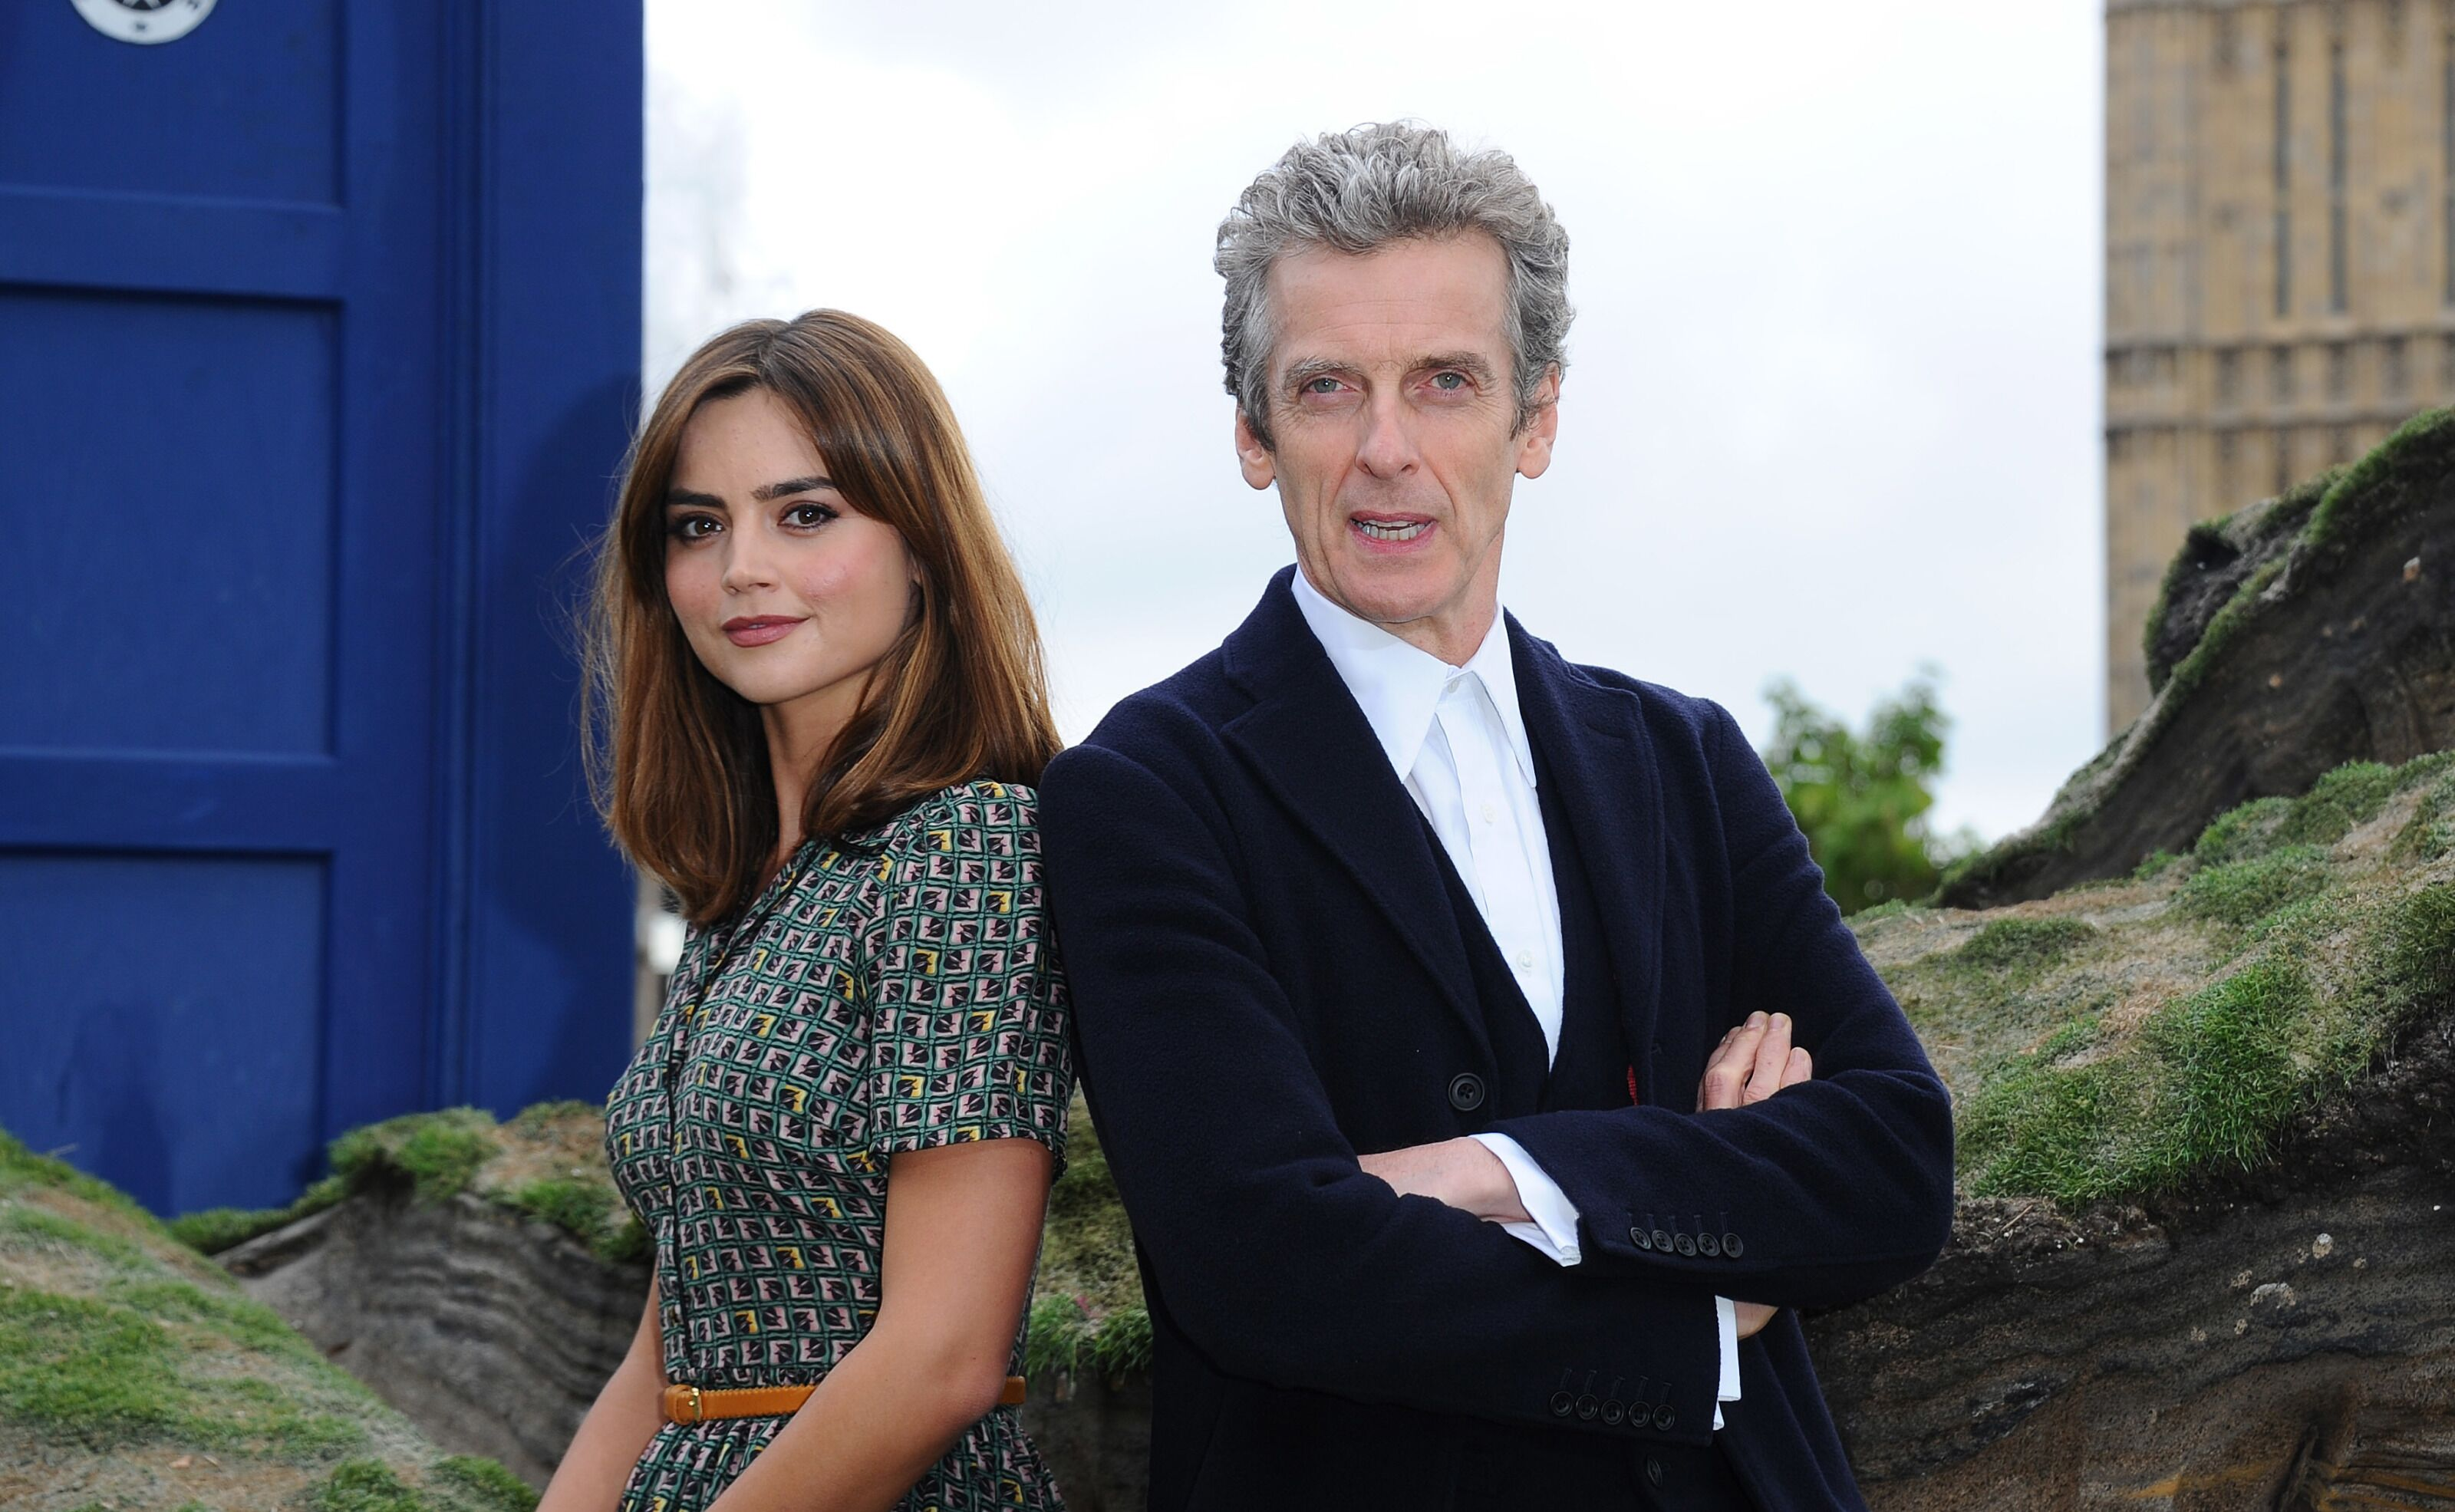 Doctor Who: Clara and regeneration – Why did she have a problem with it?